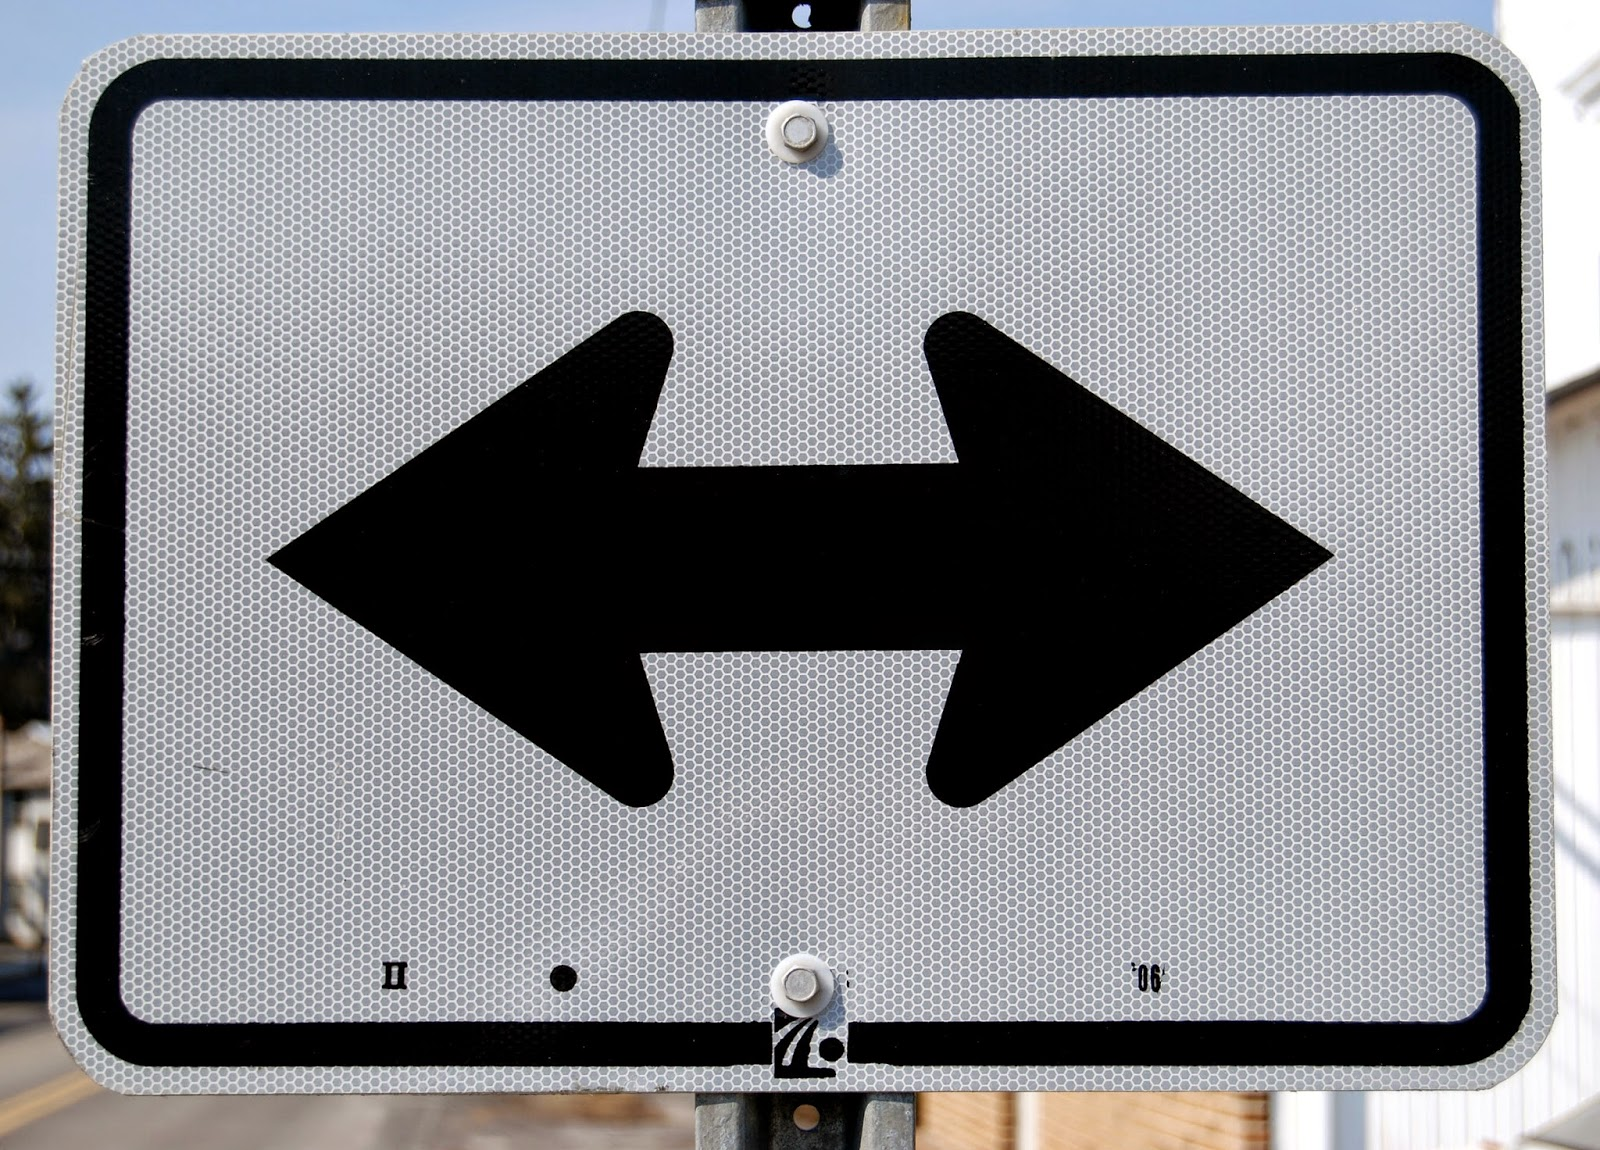 sign pointing to two different directions. Crossroads